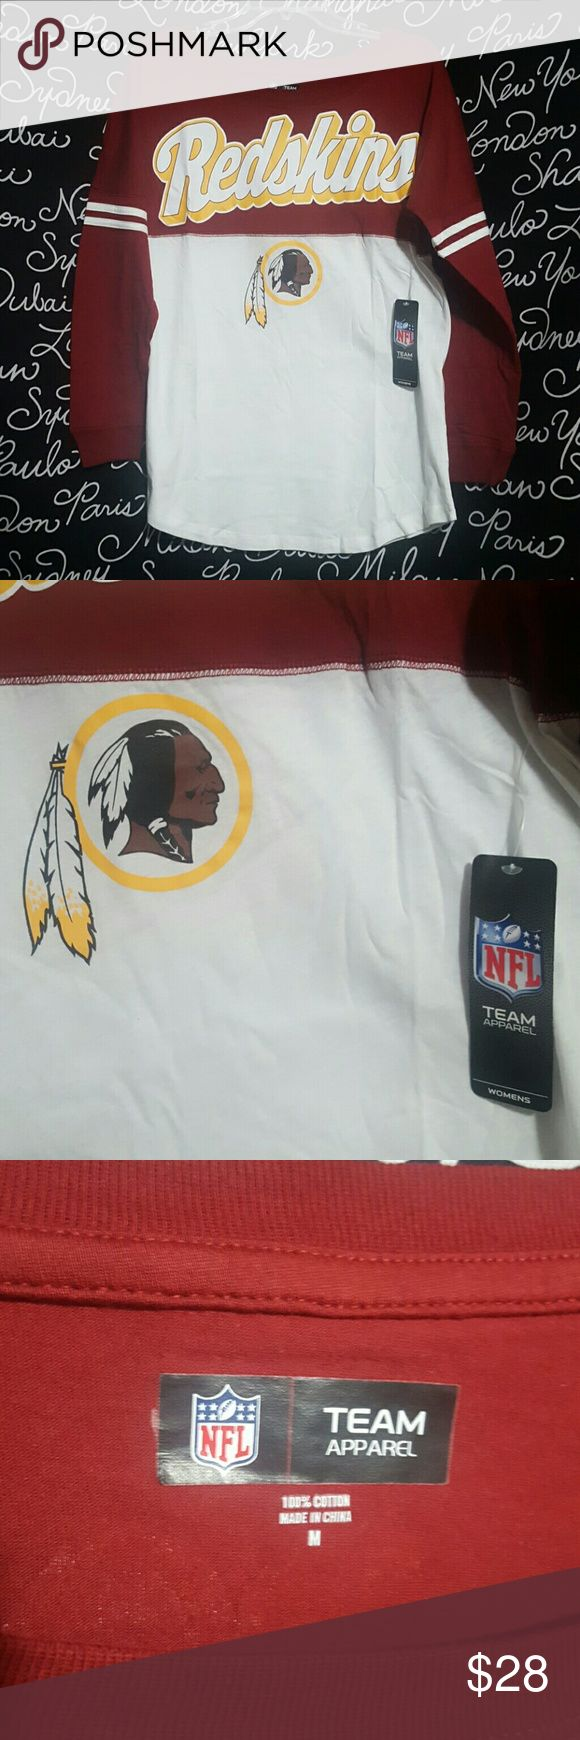 NWT Women's NFL Washington Redskins ?NWT? Long sleeve Washington Redskins Varsity spirit baby Jersey tee , cotton , crew neck machine washable inside out with authentic NFL team apparel tag attached.    Please ask any and all questions before purchasing this item. NFL gear Tops Tees - Long Sleeve